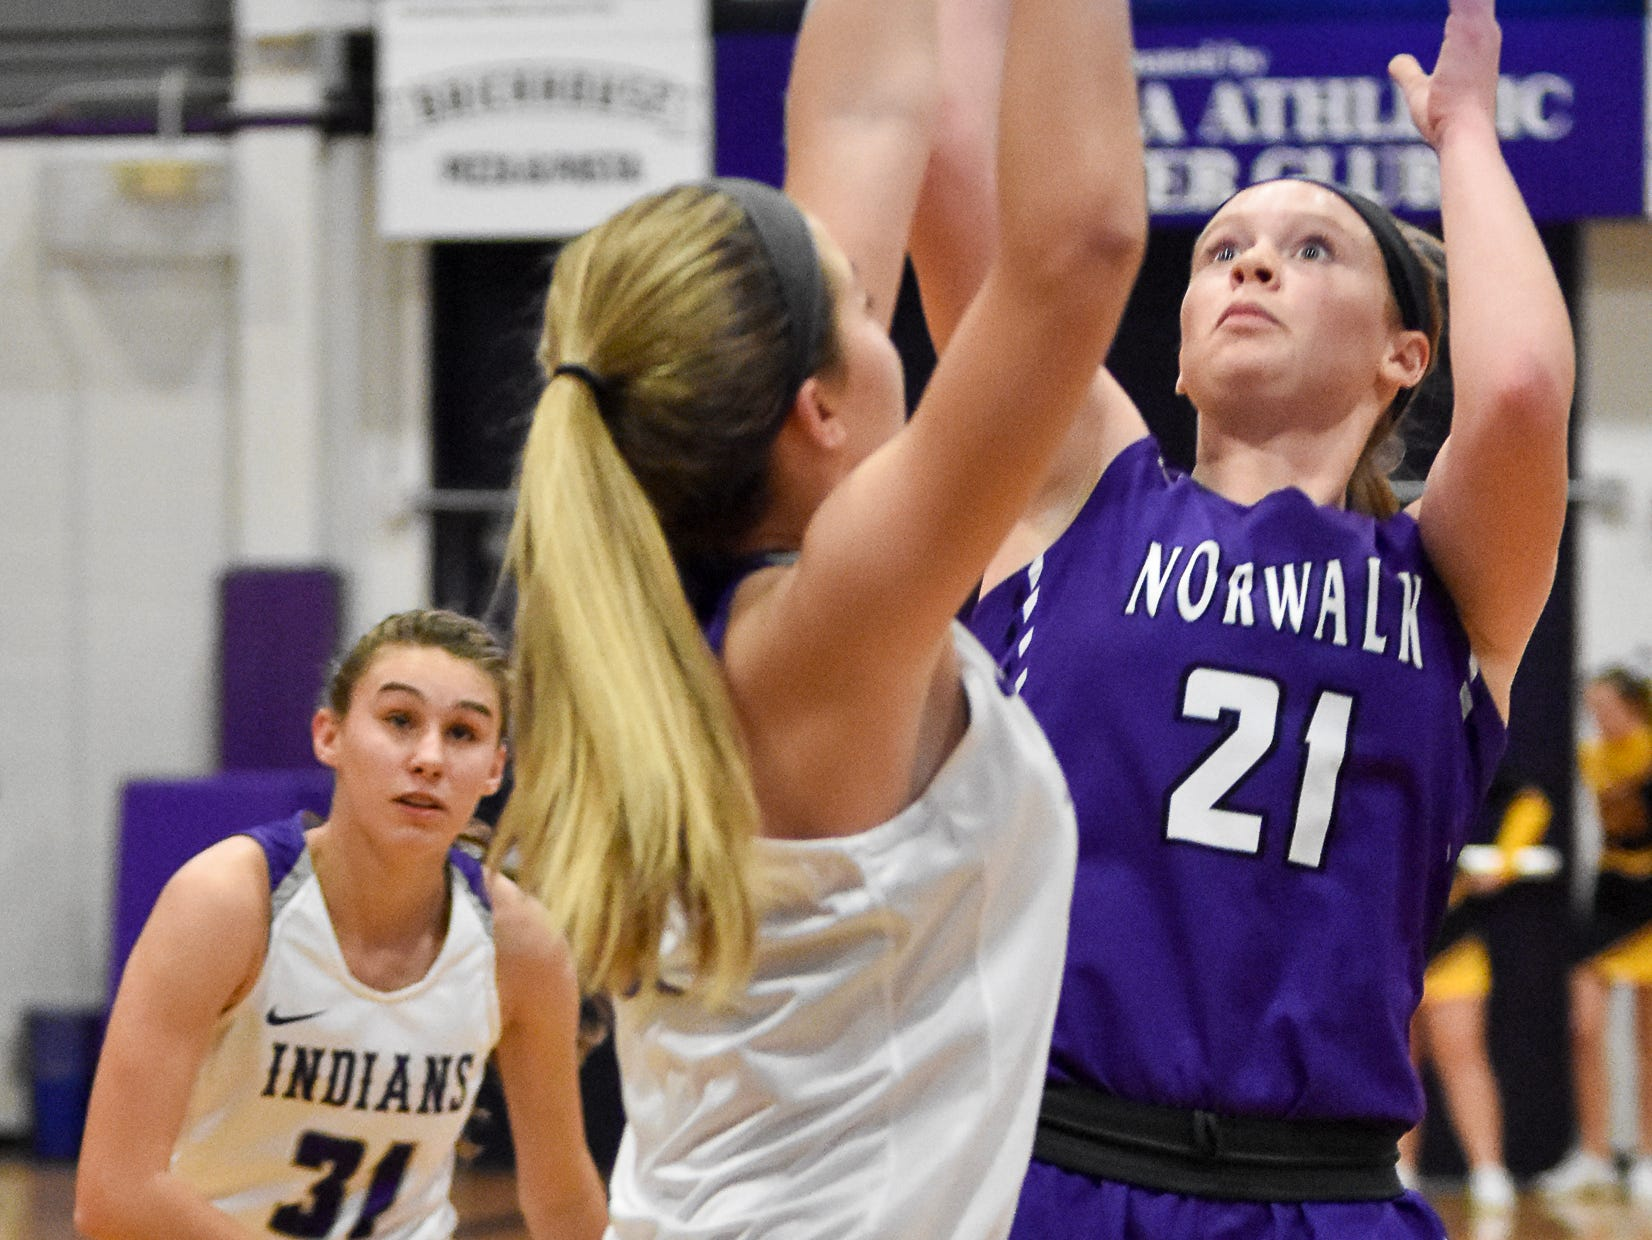 Indianola's Kendall Clatt guards Gianna Bellizzi. The Indianola girls' basketball team picked up their first win of the season with a 57-34 home victory over Norwalk on Nov. 30, 2018.